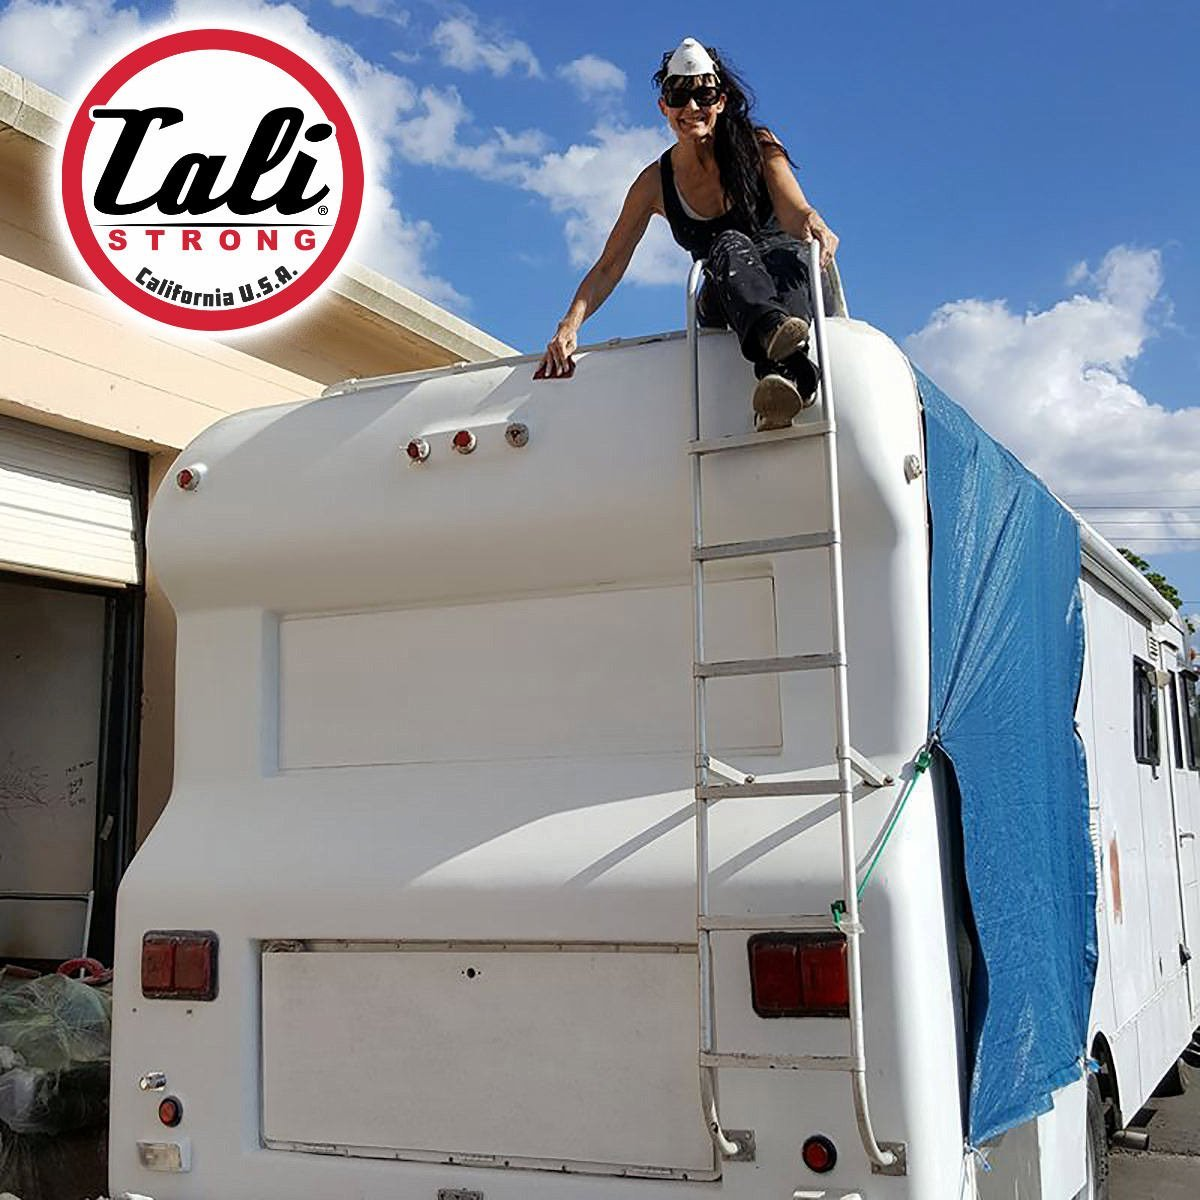 CALI Strong's Mobile Pop-Up Store is a 1969 vintage Dodge RV being worked on by Jennifer Echeverria, the company's founder and chairman.